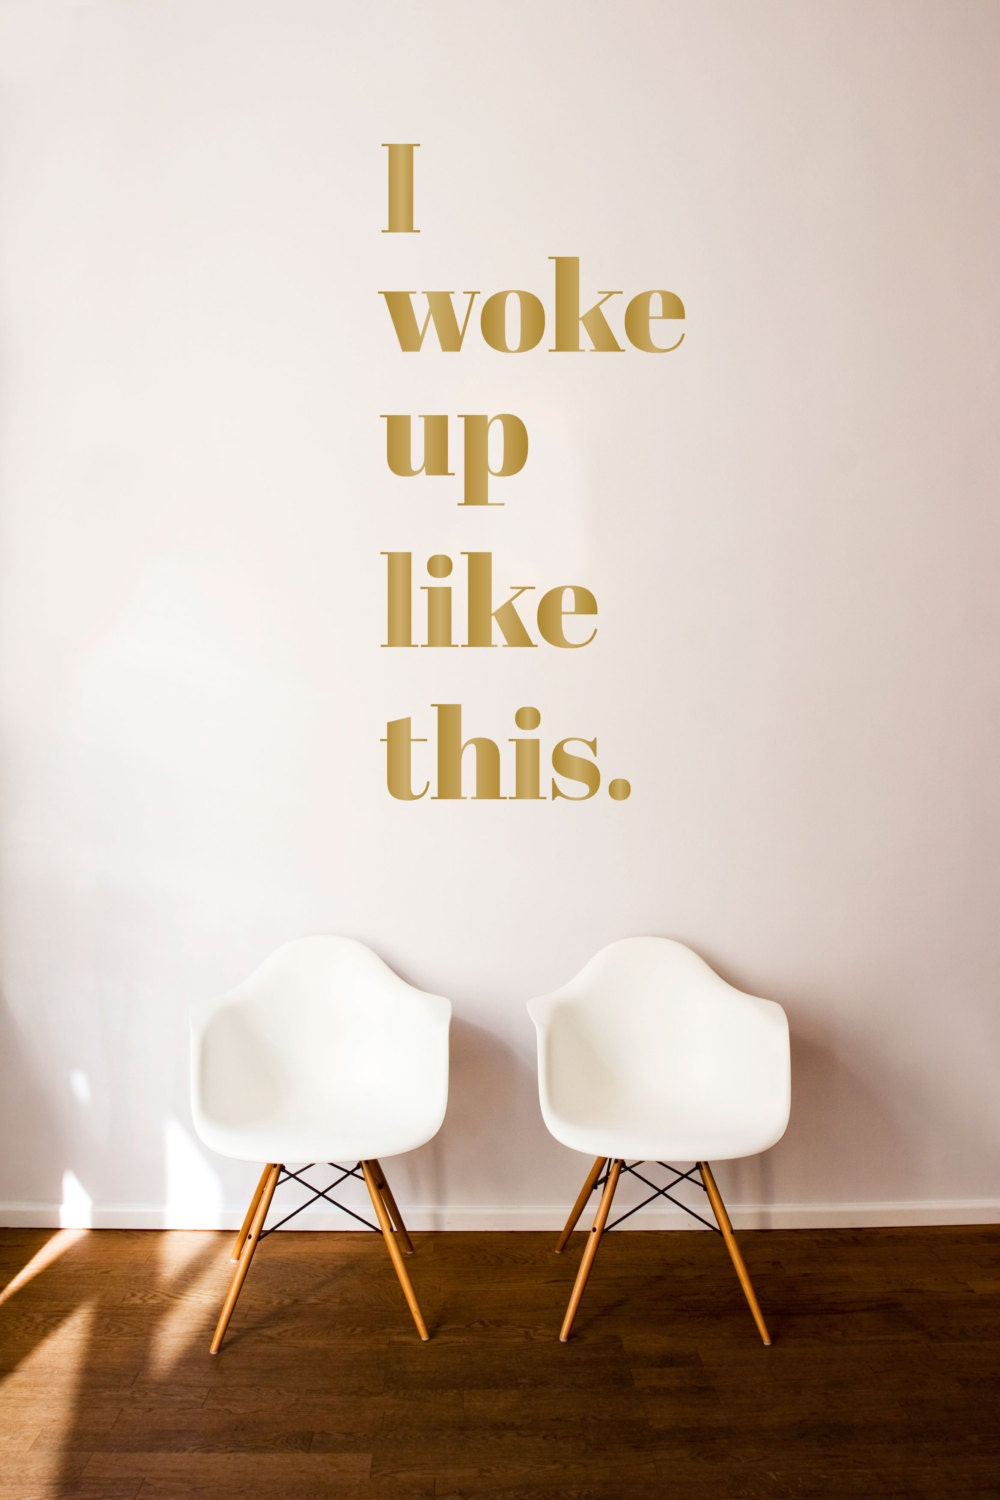 I woke up like this quote wall decal custom vinyl art zoom amipublicfo Image collections